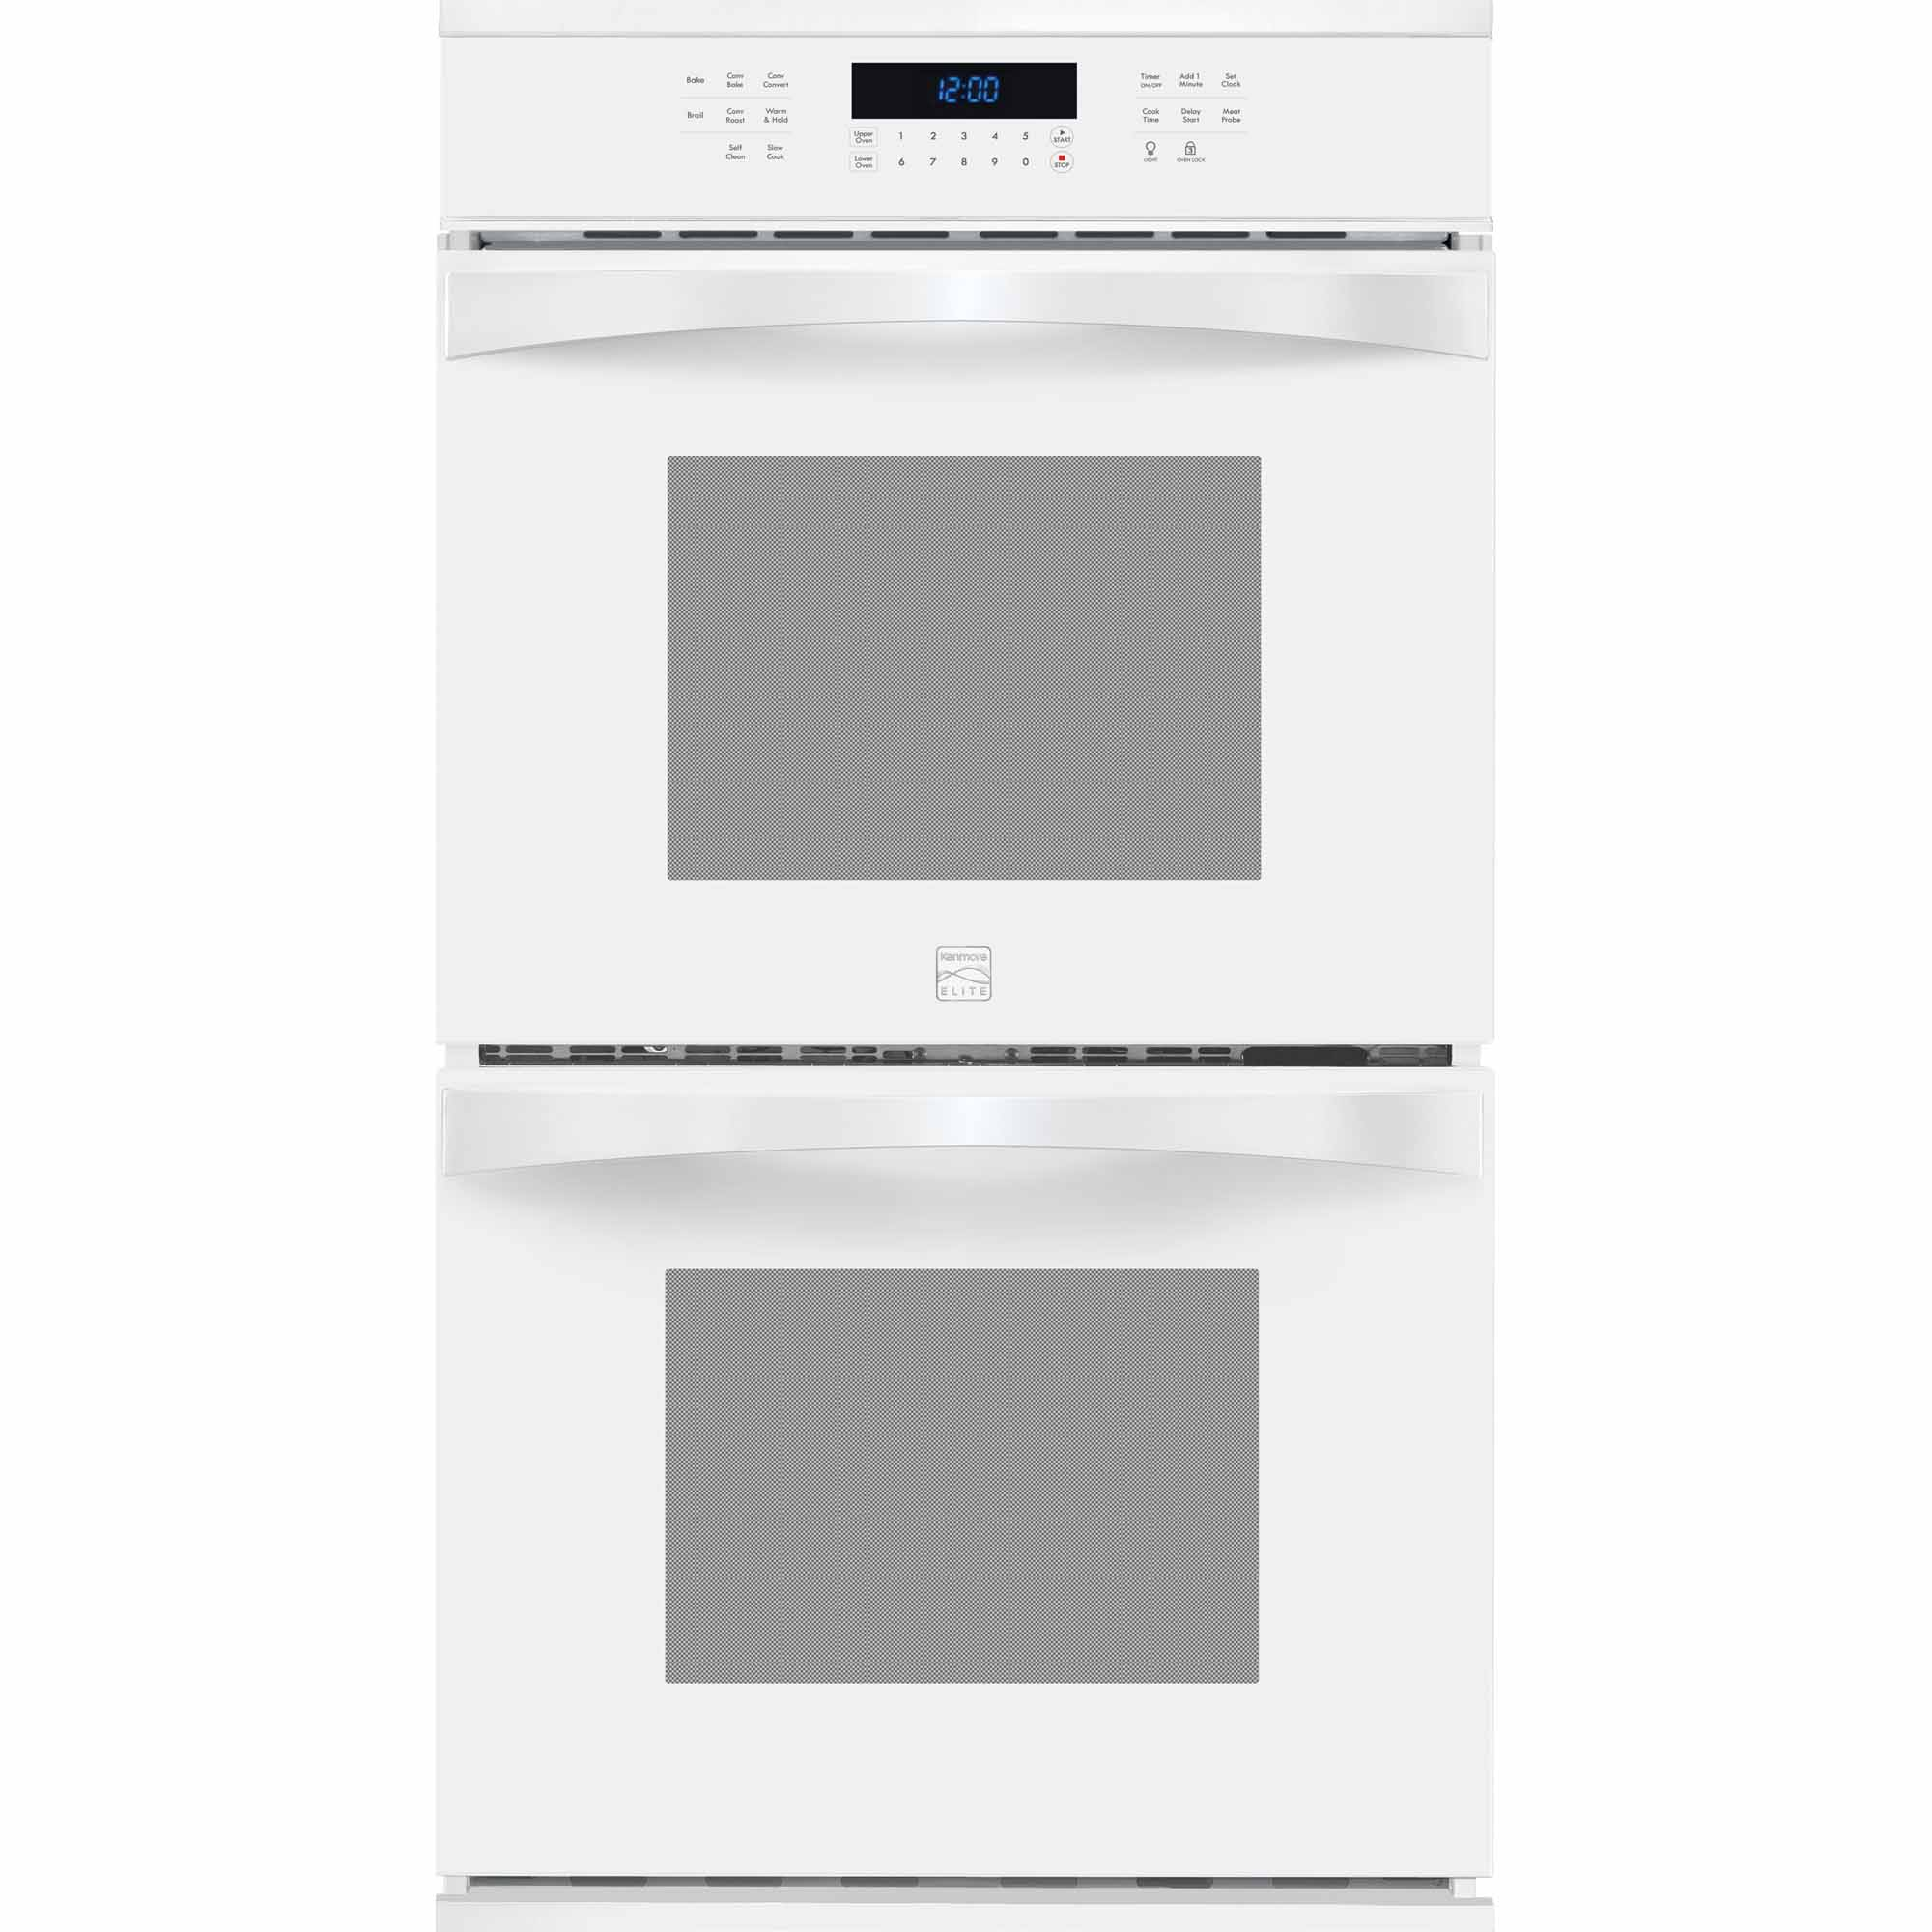 Kenmore Elite 48442 27 Electric Double Wall Oven w/ True Convection™ - White